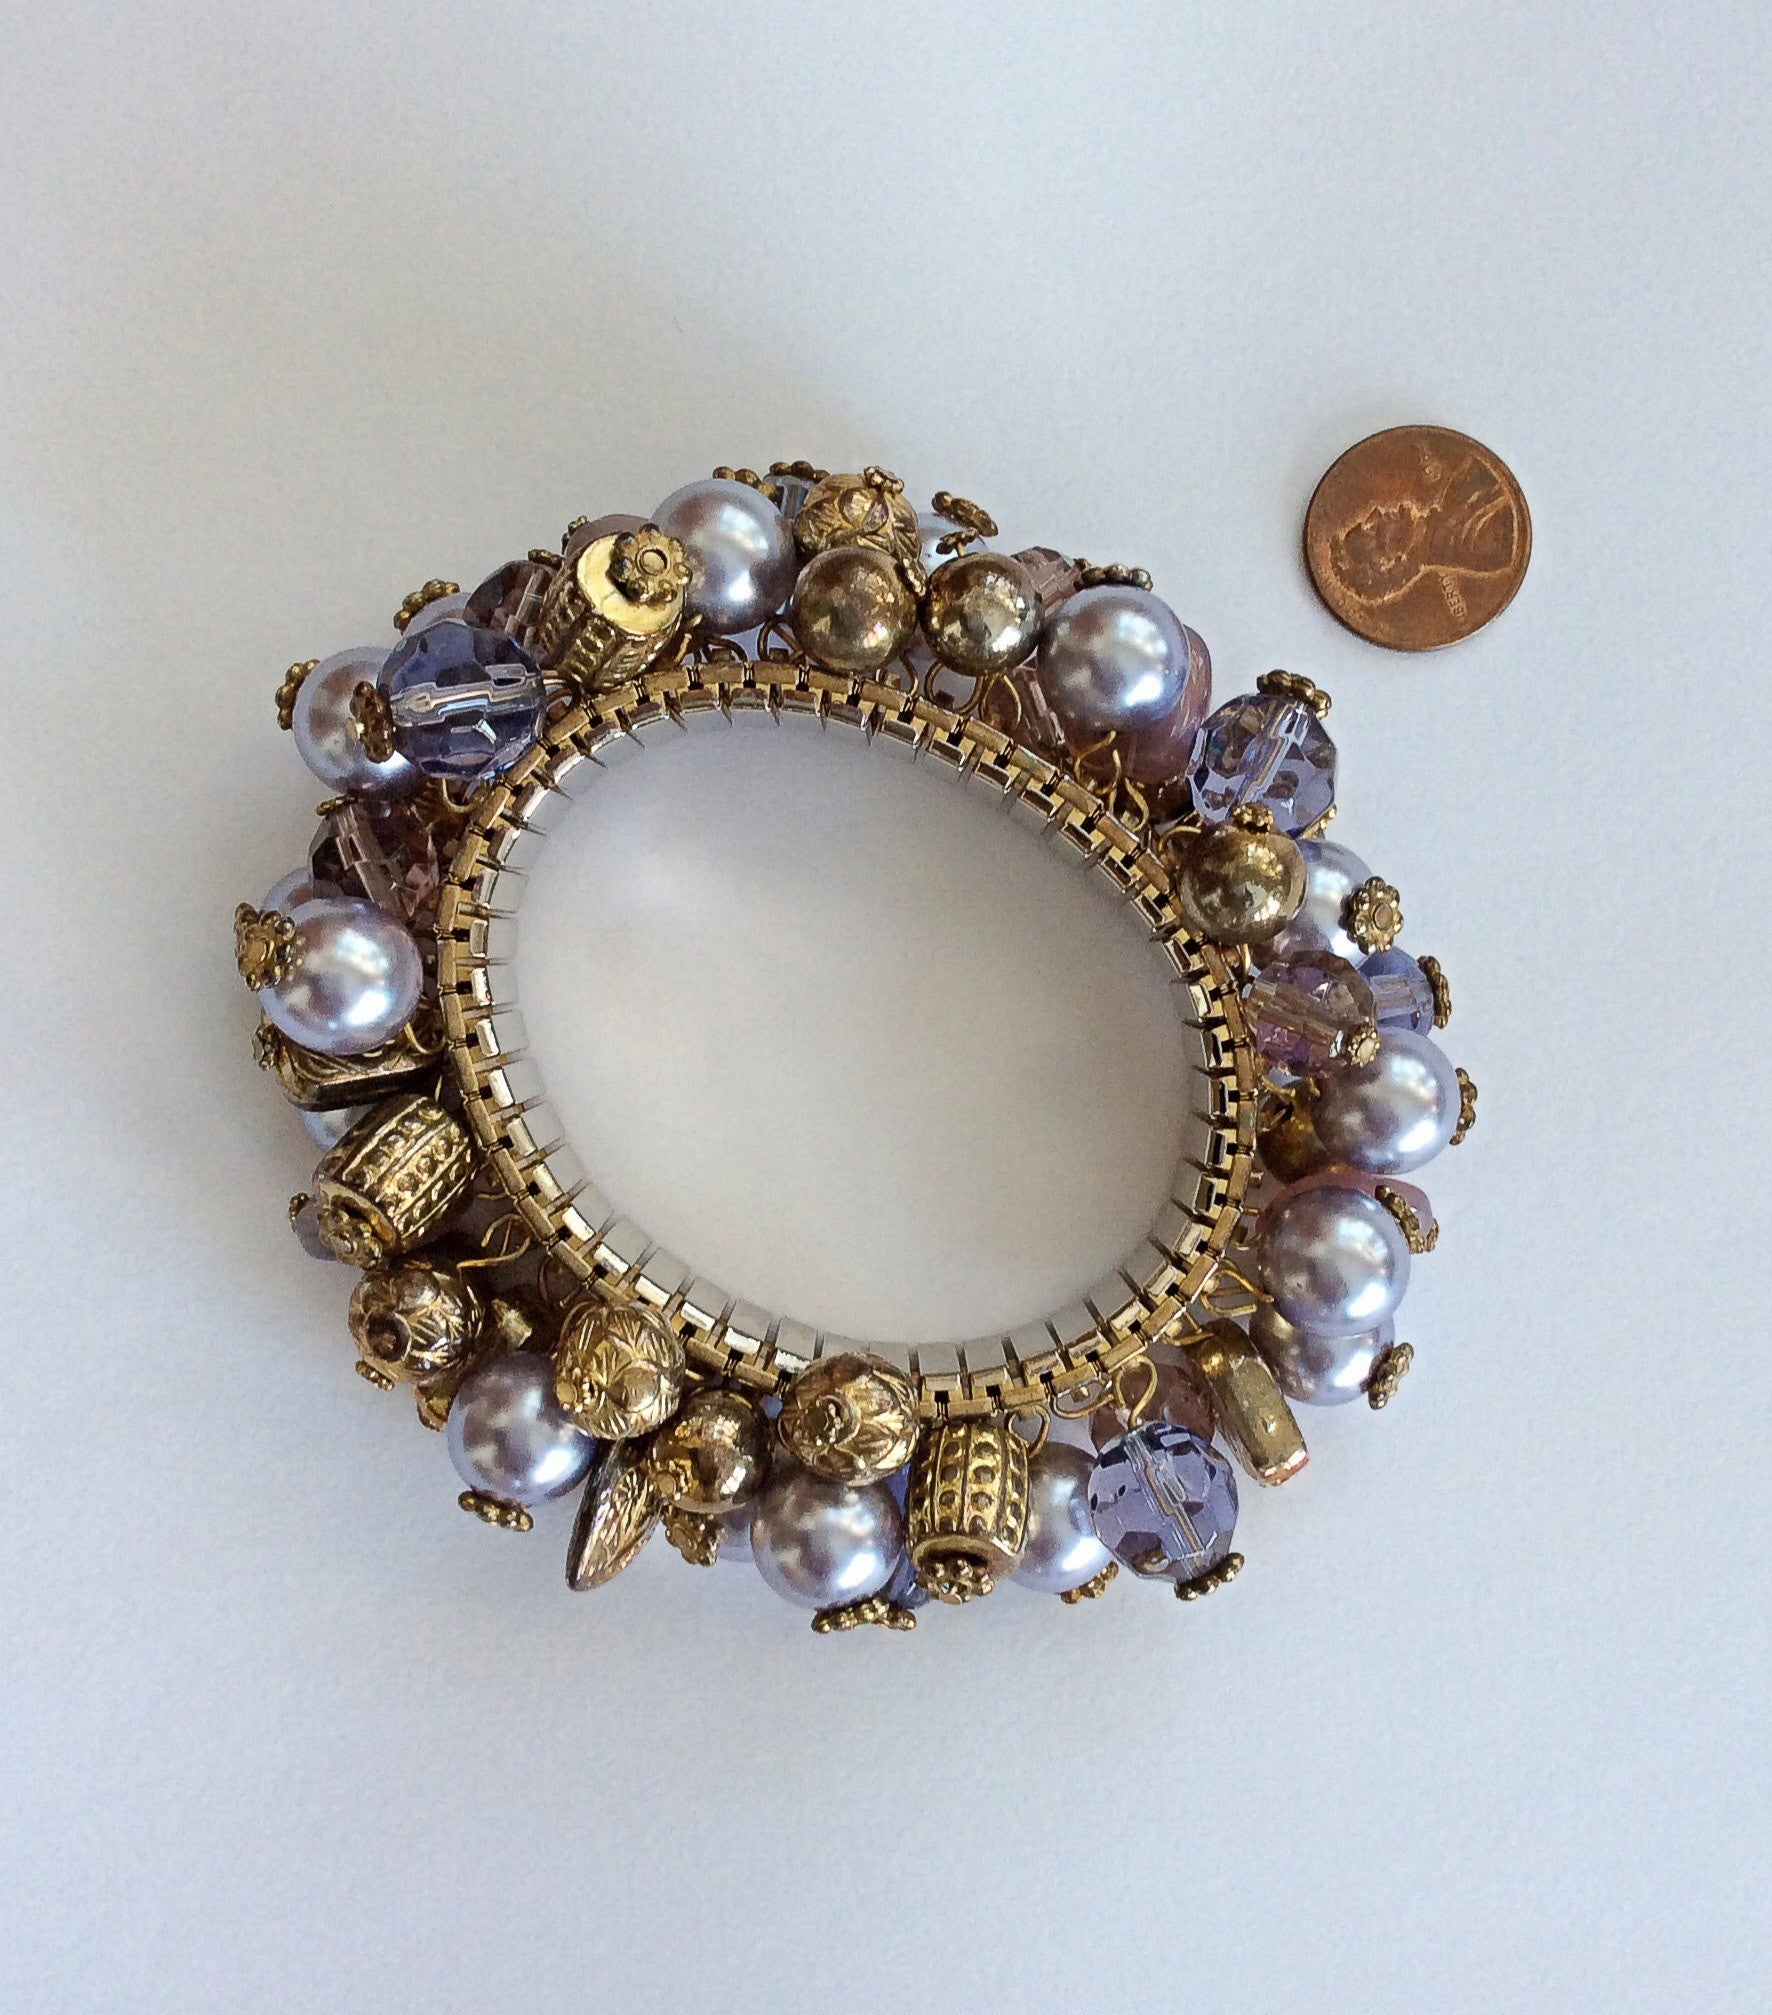 60s Expansion Bracelet